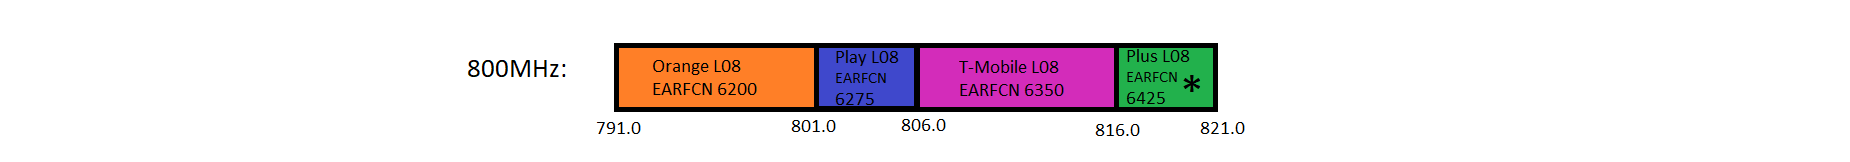 800MHz (band 20) LTE spectrum use in Poland.